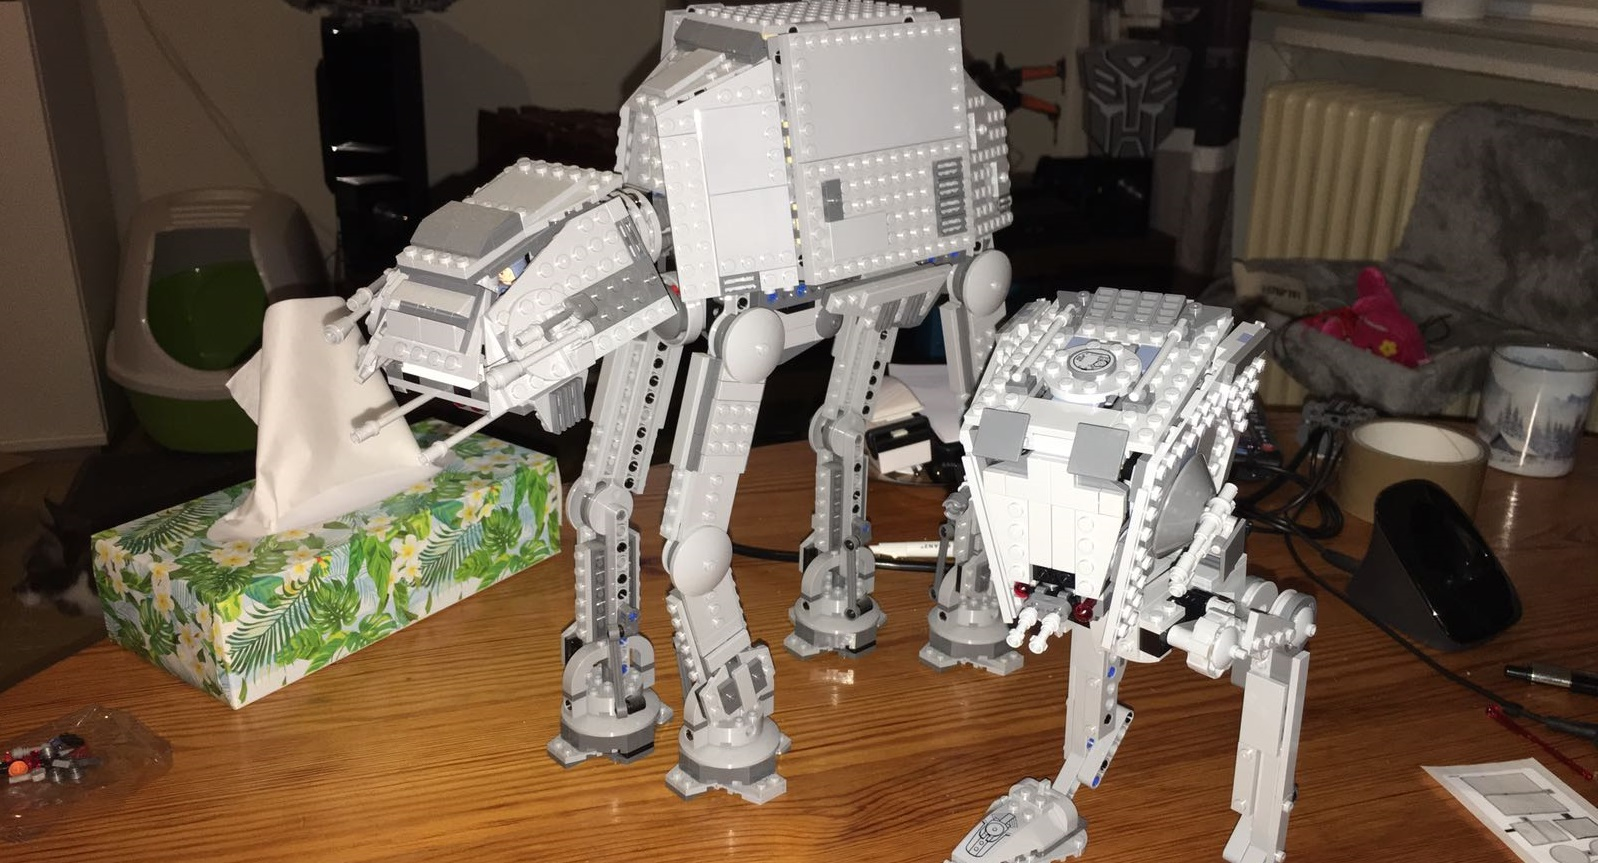 #shortcut: Live-Bilder vom neuen LEGO Star Wars 75153 AT-ST